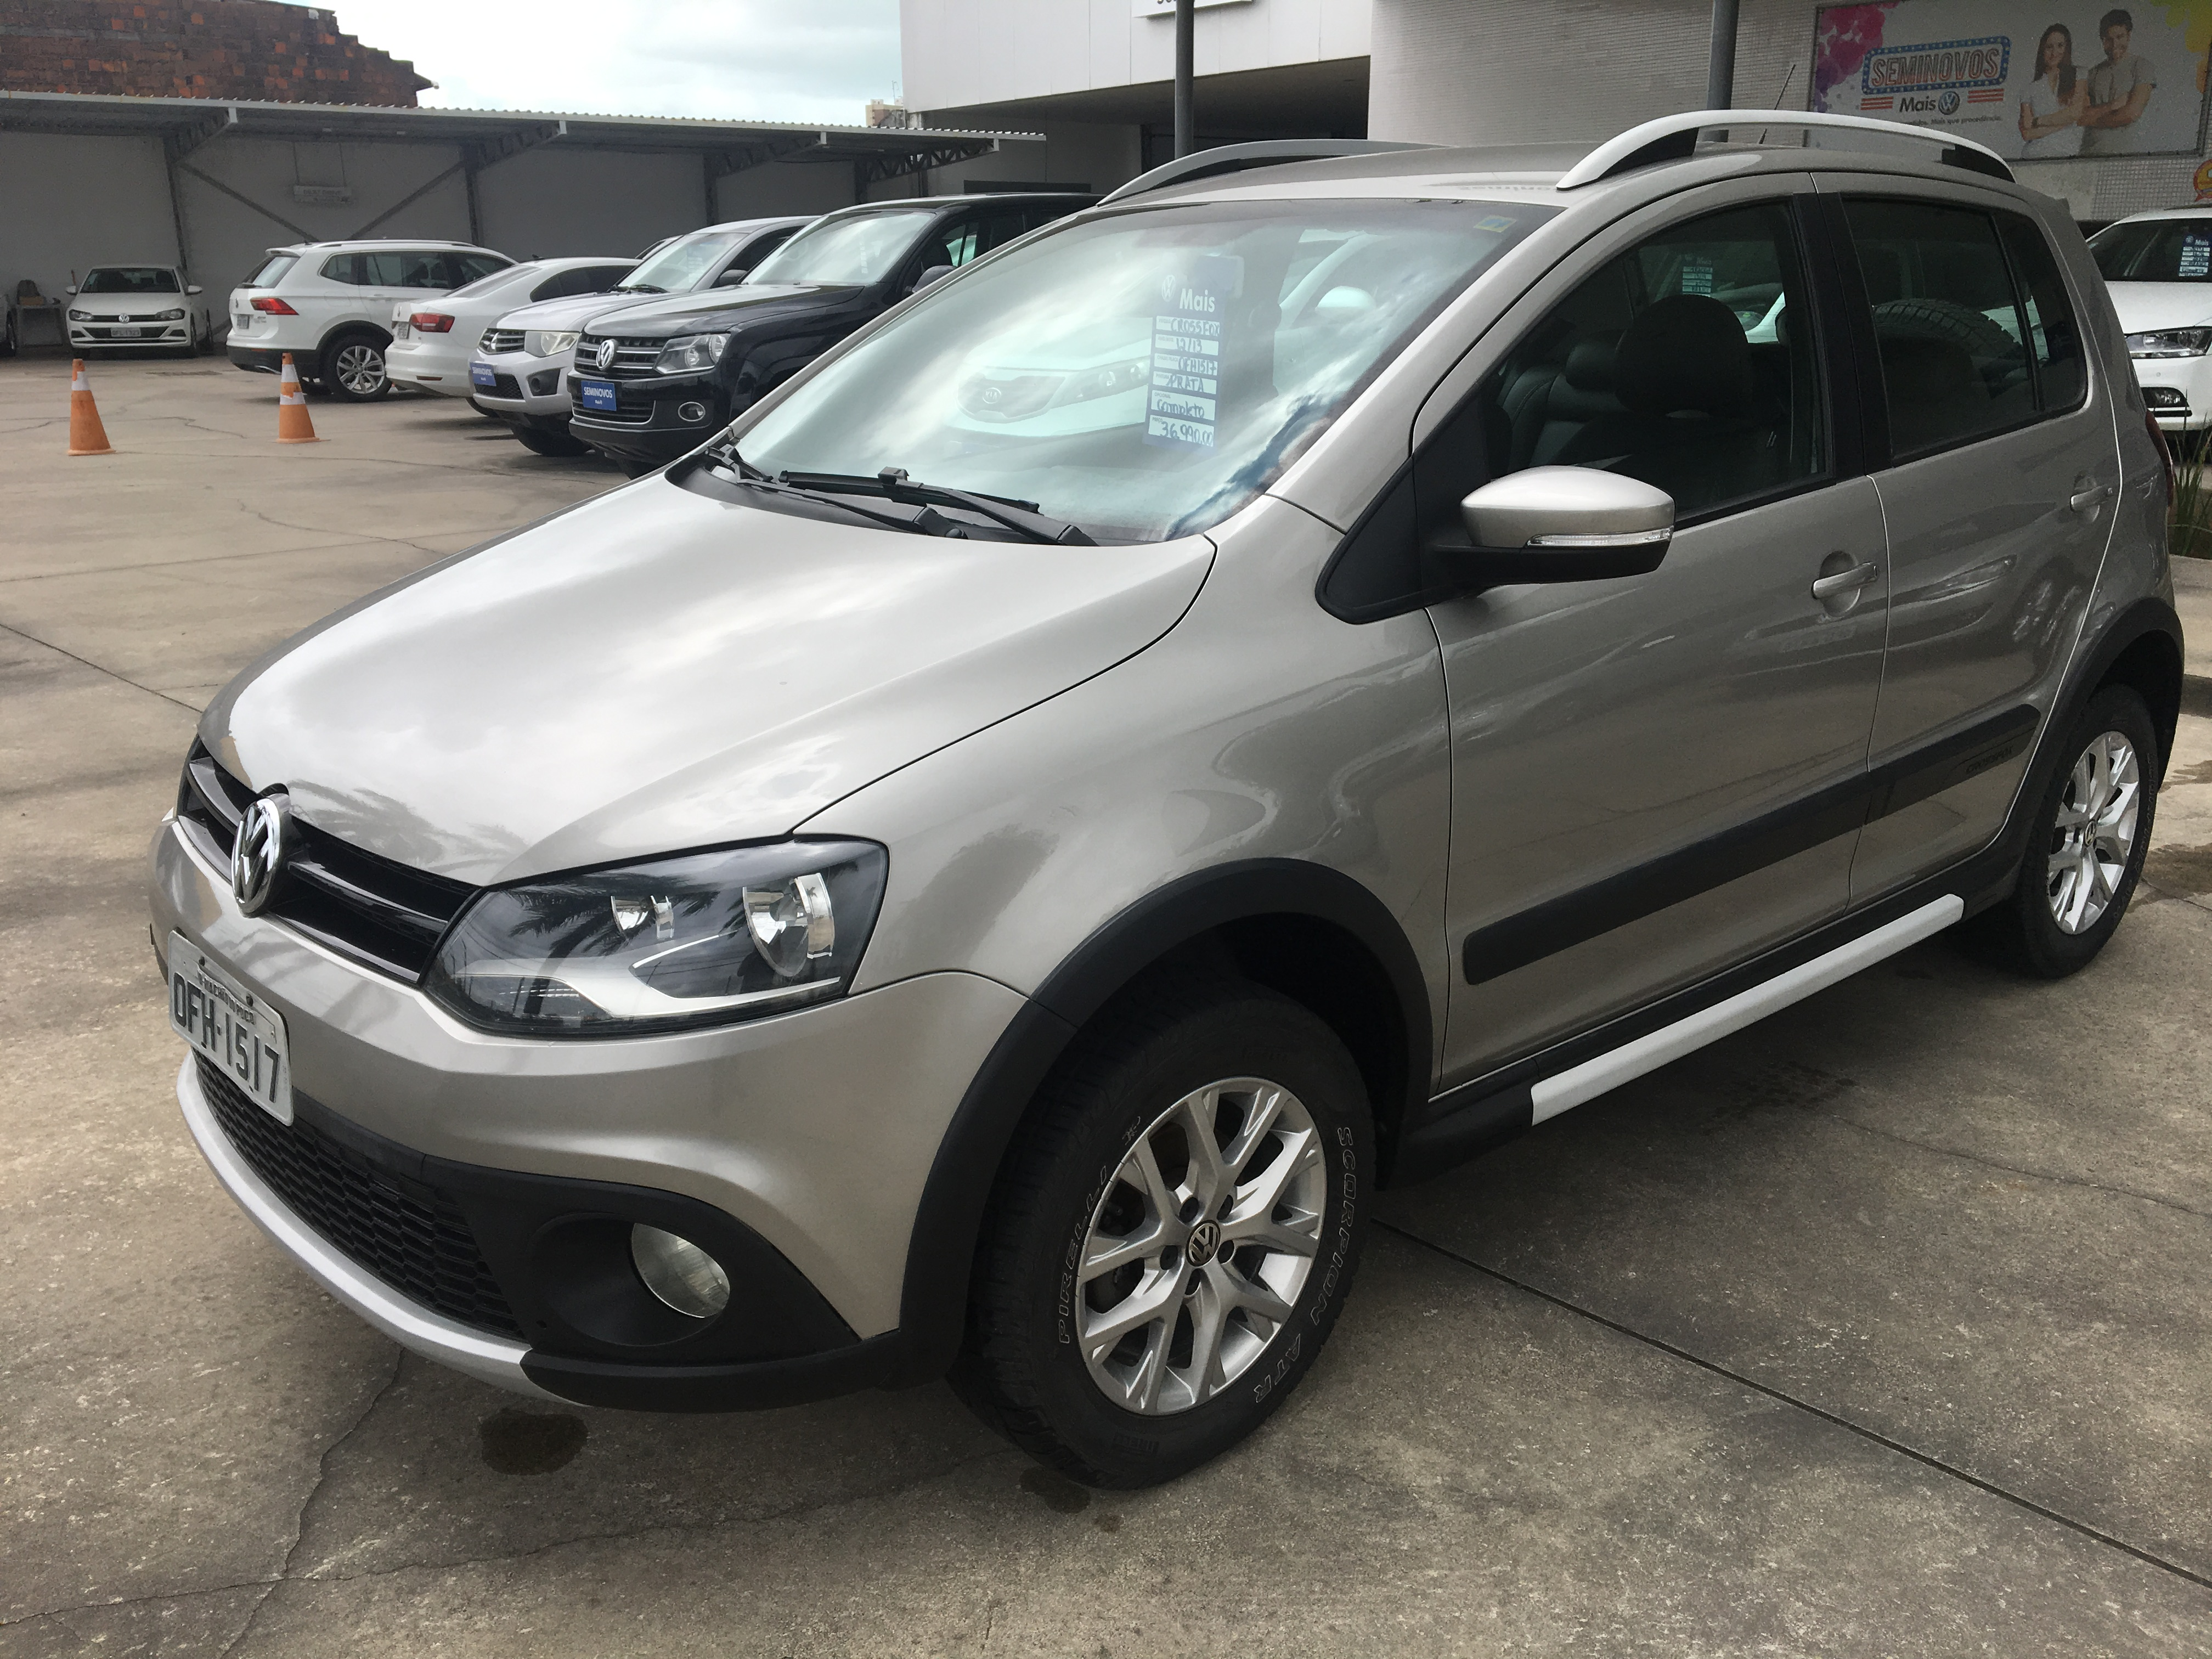 VOLKSWAGEN CROSSFOX 1.6 MI FLEX 8V 4P MANUAL